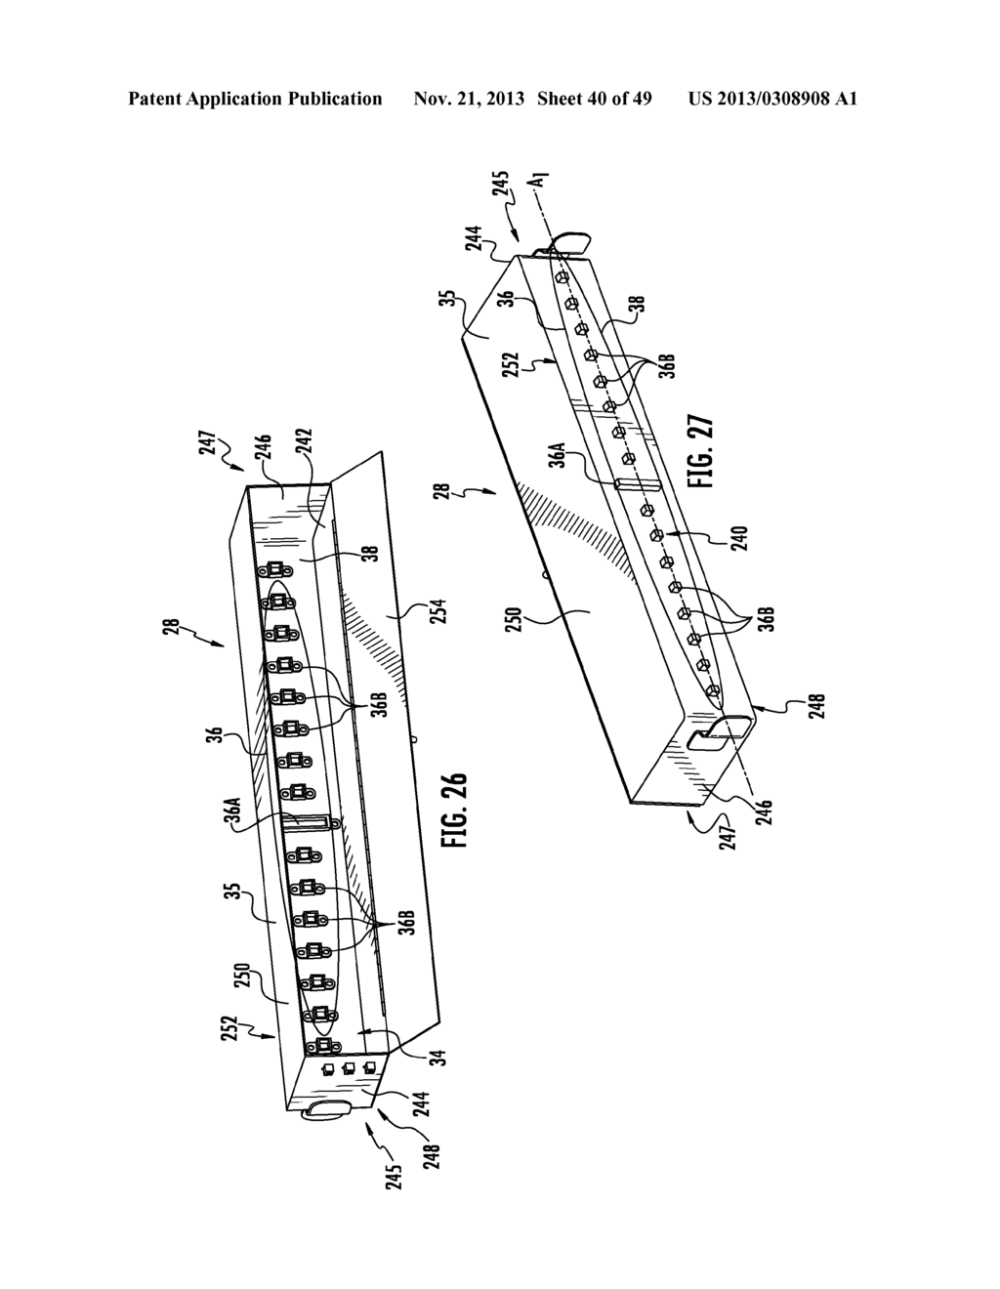 medium resolution of  related connectors and cables suitable for establishing optical connections for optical backplanes in equipment racks diagram schematic and image 41